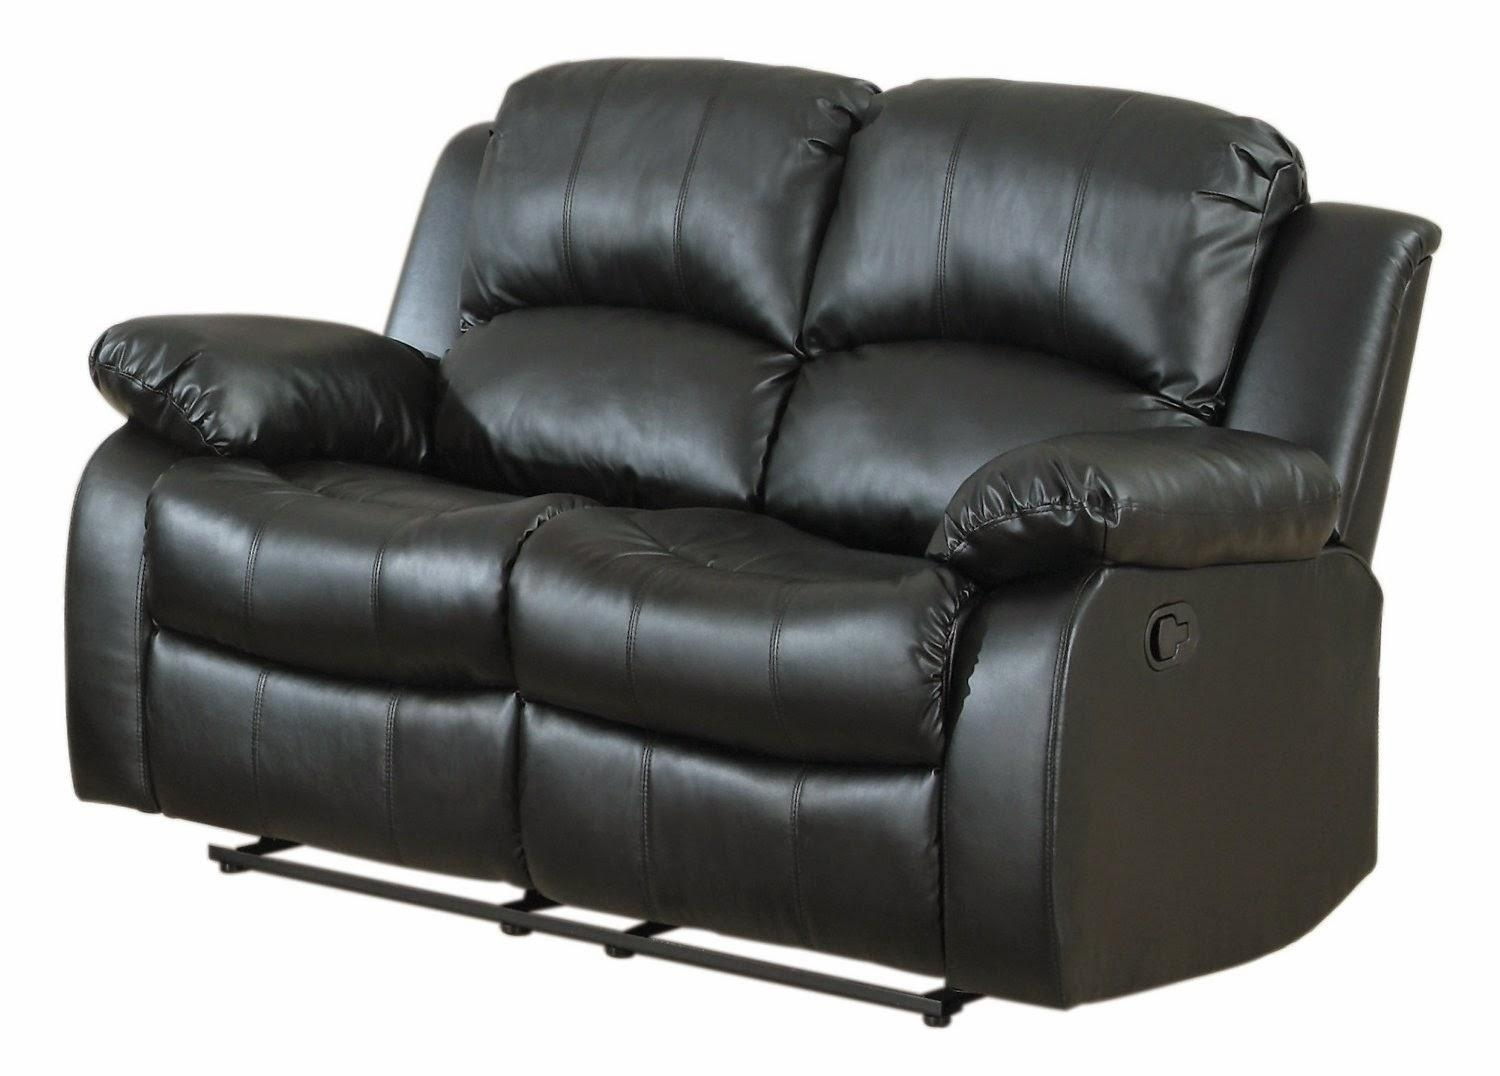 Berkline recliner sofa and loveseat for Berkline chaise recliner